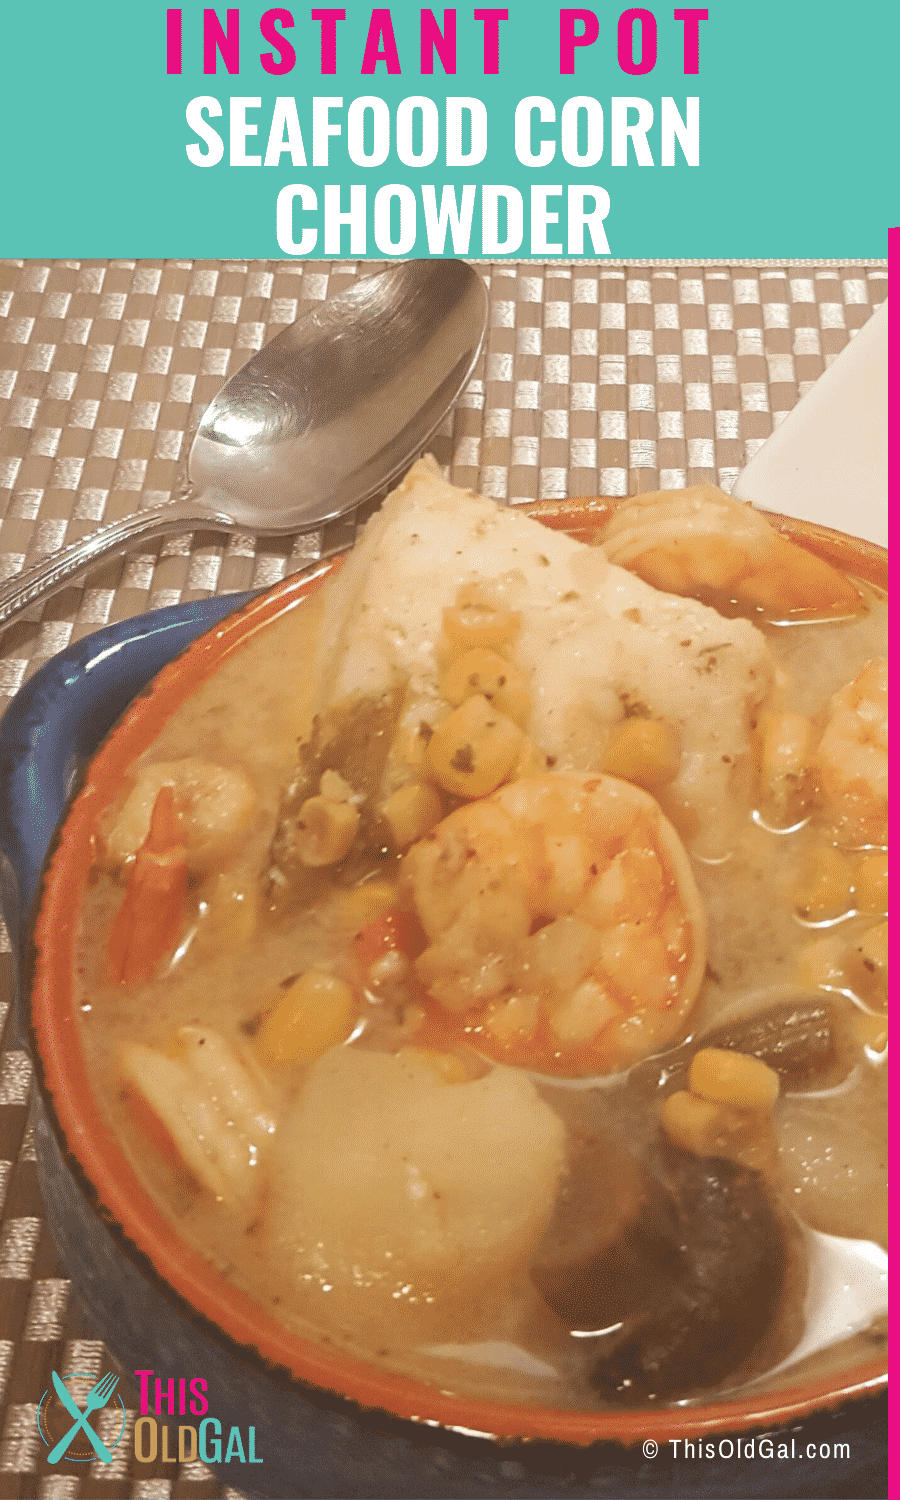 Plate of food with seafood corn chowder in it